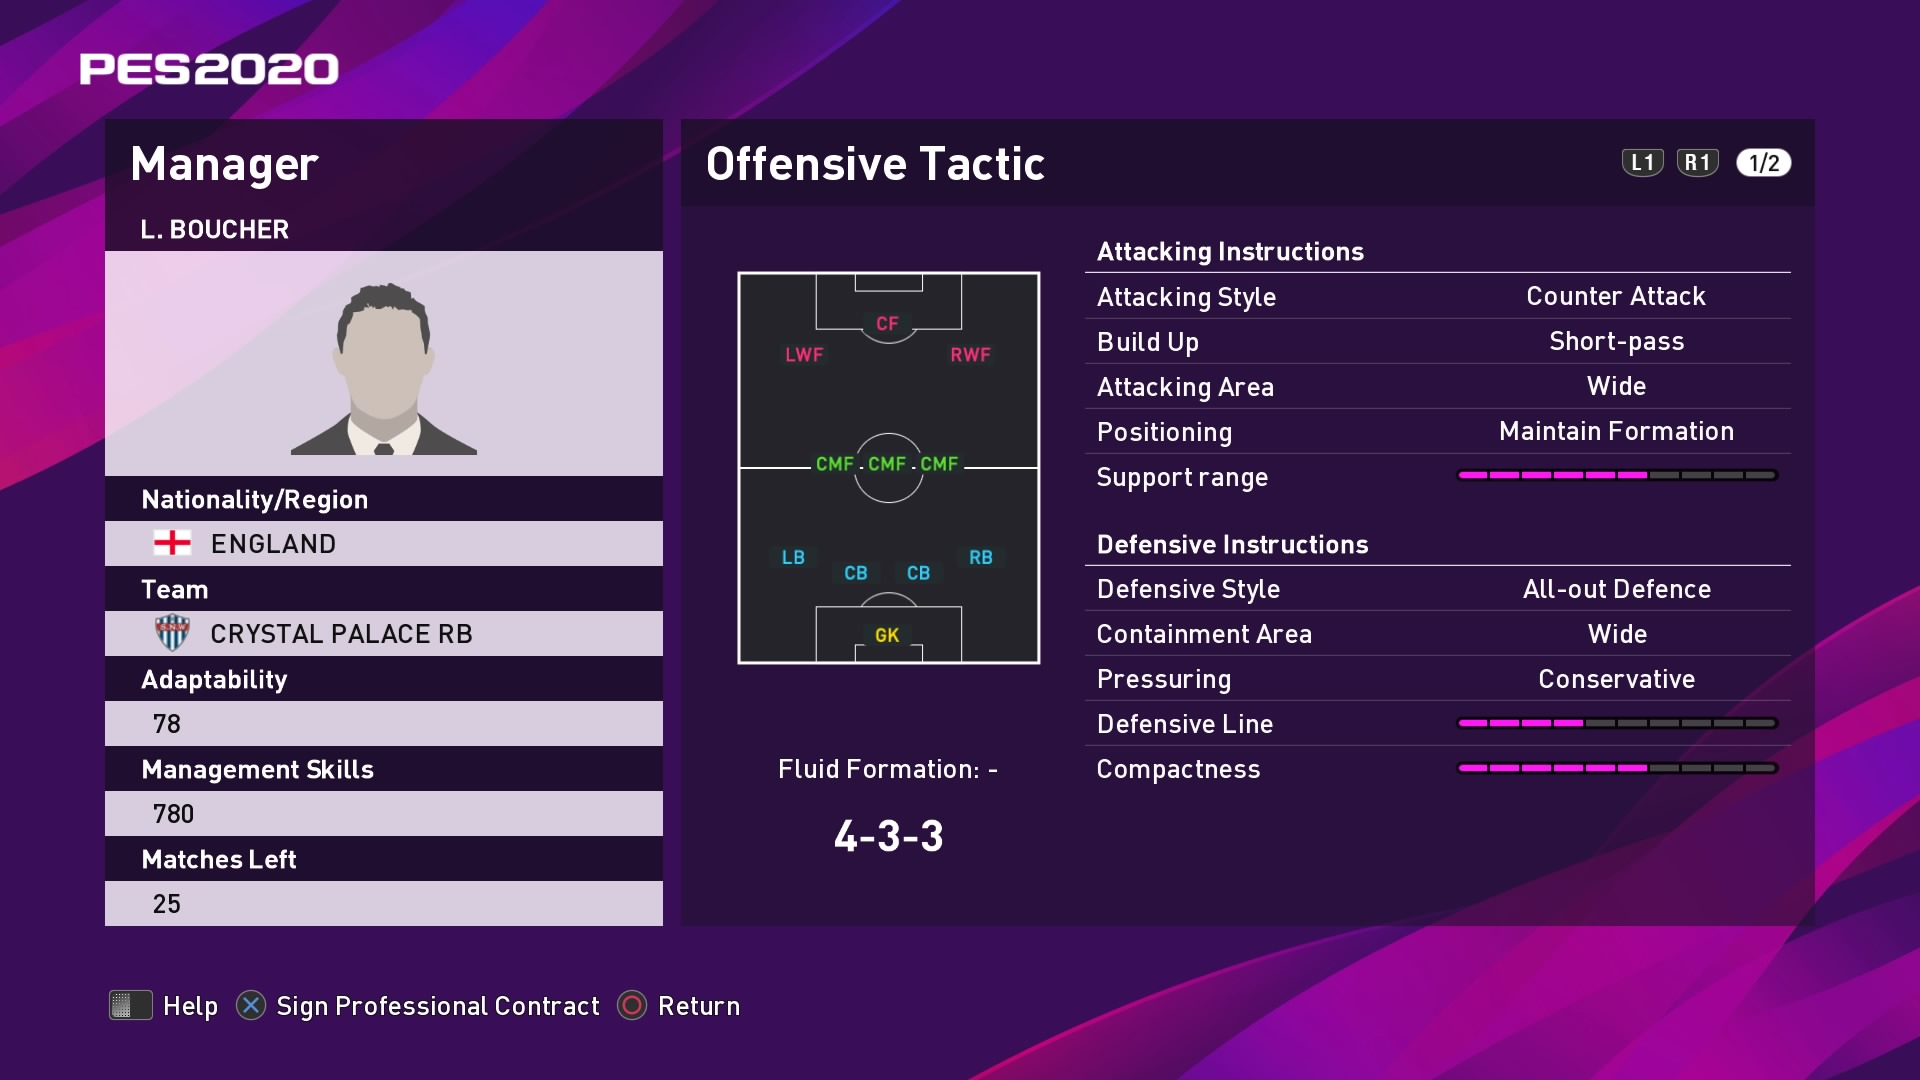 L. Boucher (2) (Roy Hodgson) Offensive Tactic in PES 2020 myClub